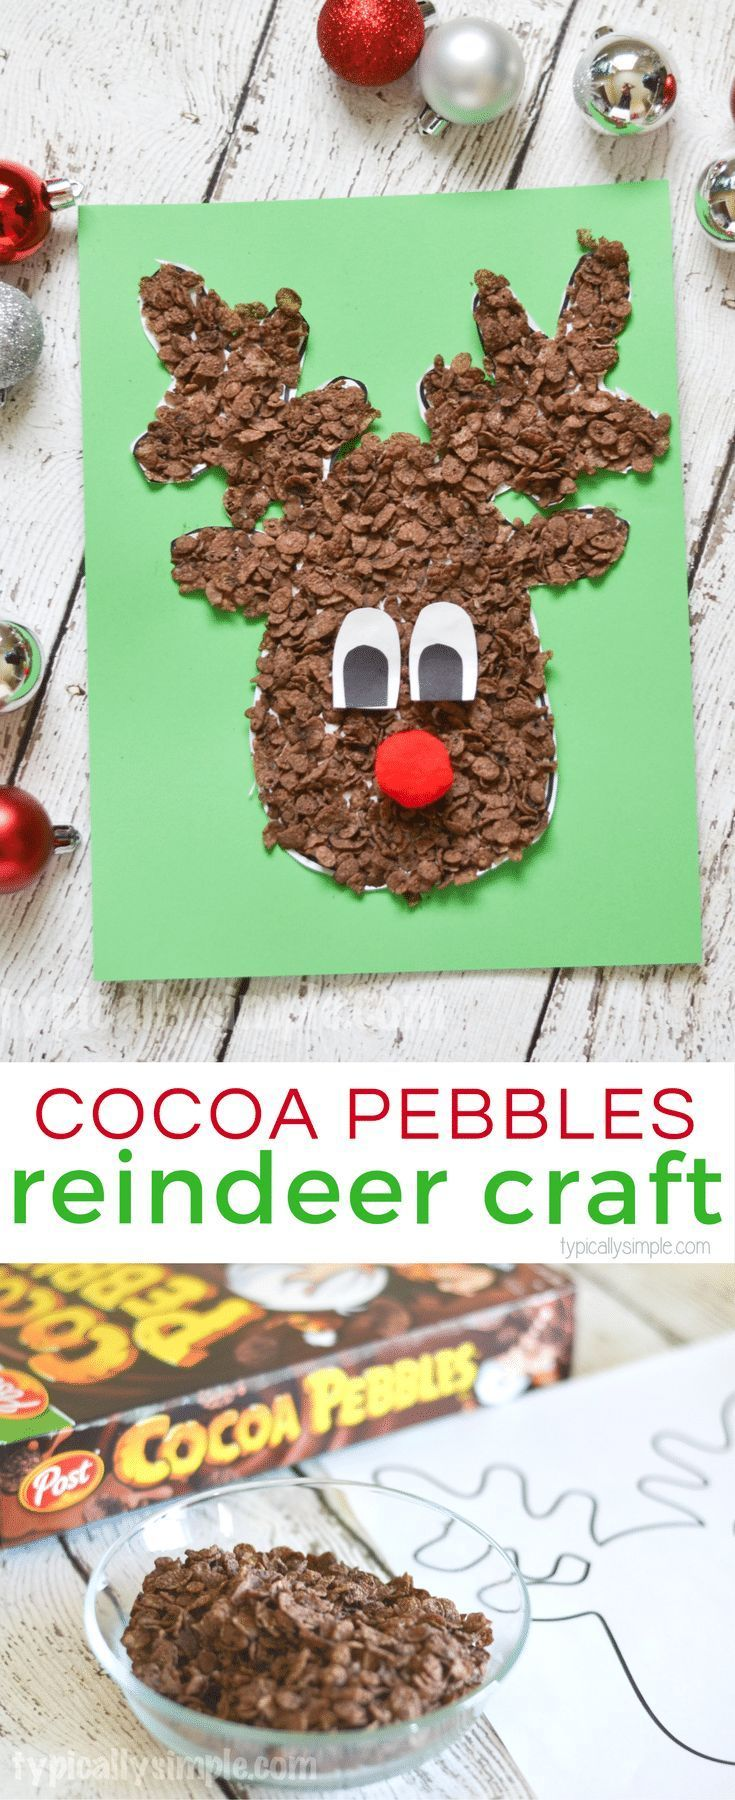 Using Cocoa Pebbles, create this super cute reindeer craft with the kids for Christmas! [ad]